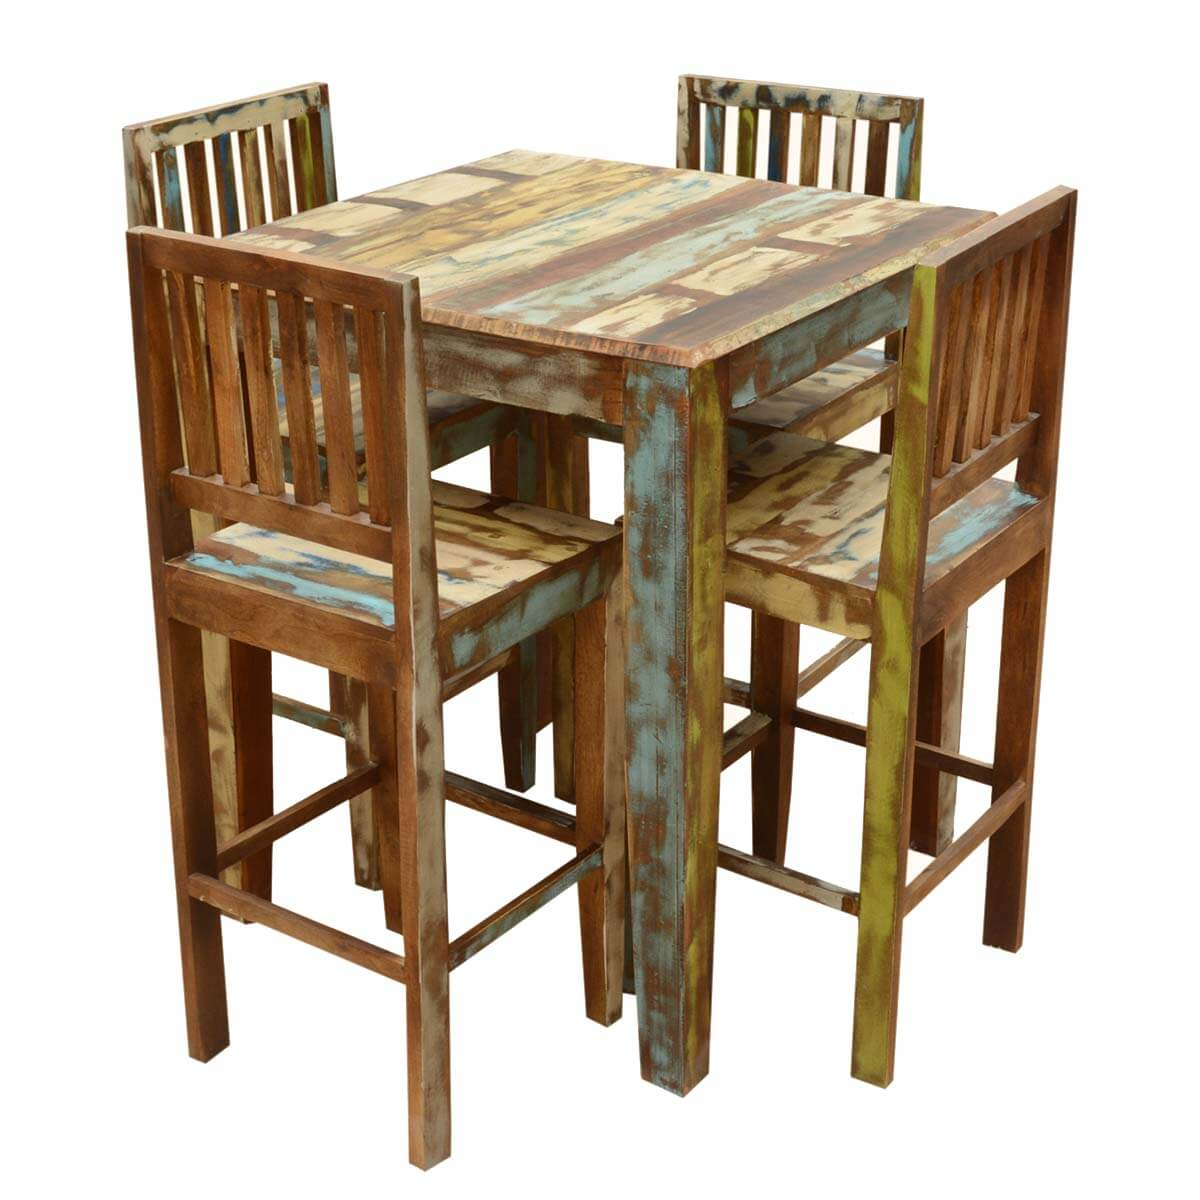 Appalachian Rustic Reclaimed Wood High Bar Table amp Chair Set : 73935 from www.sierralivingconcepts.com size 1200 x 1200 jpeg 138kB